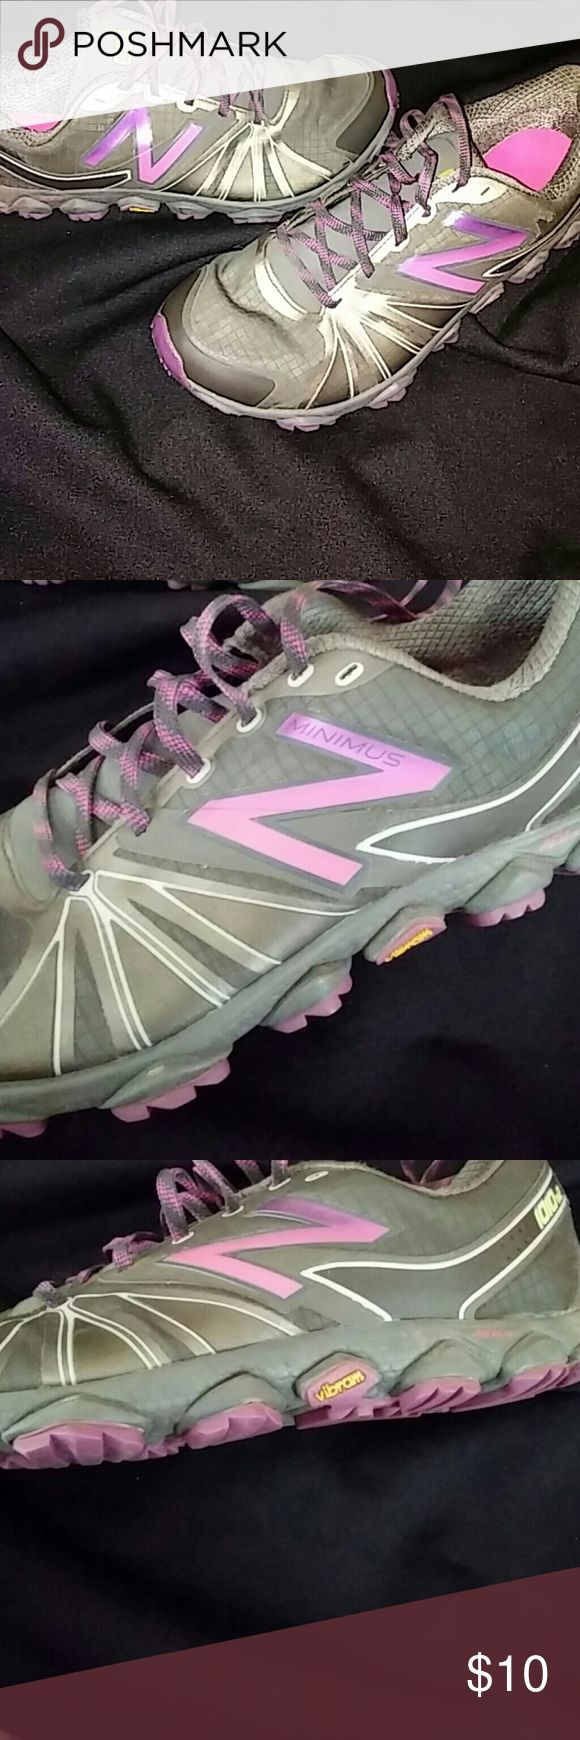 New balance minimus size 11 Size 11 great condition with minimal wear. Still looks very new. Pink that fades to purple with charcoal gray. New Balance Shoes Athletic Shoes